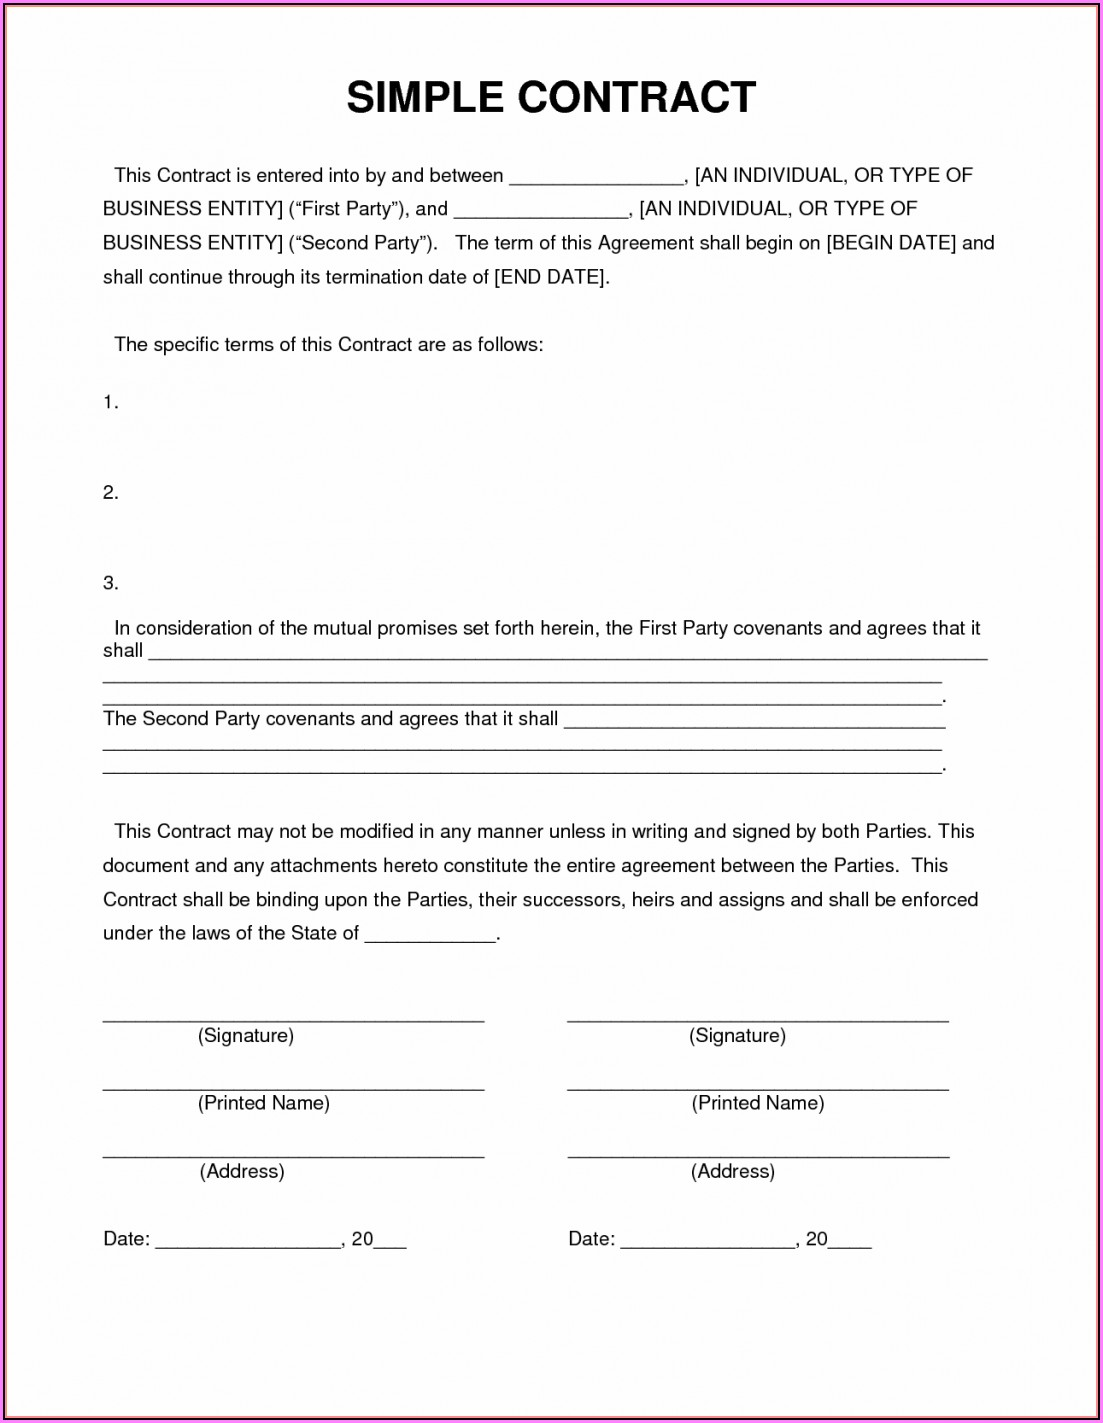 Exclusivity Agreement Template South Africa